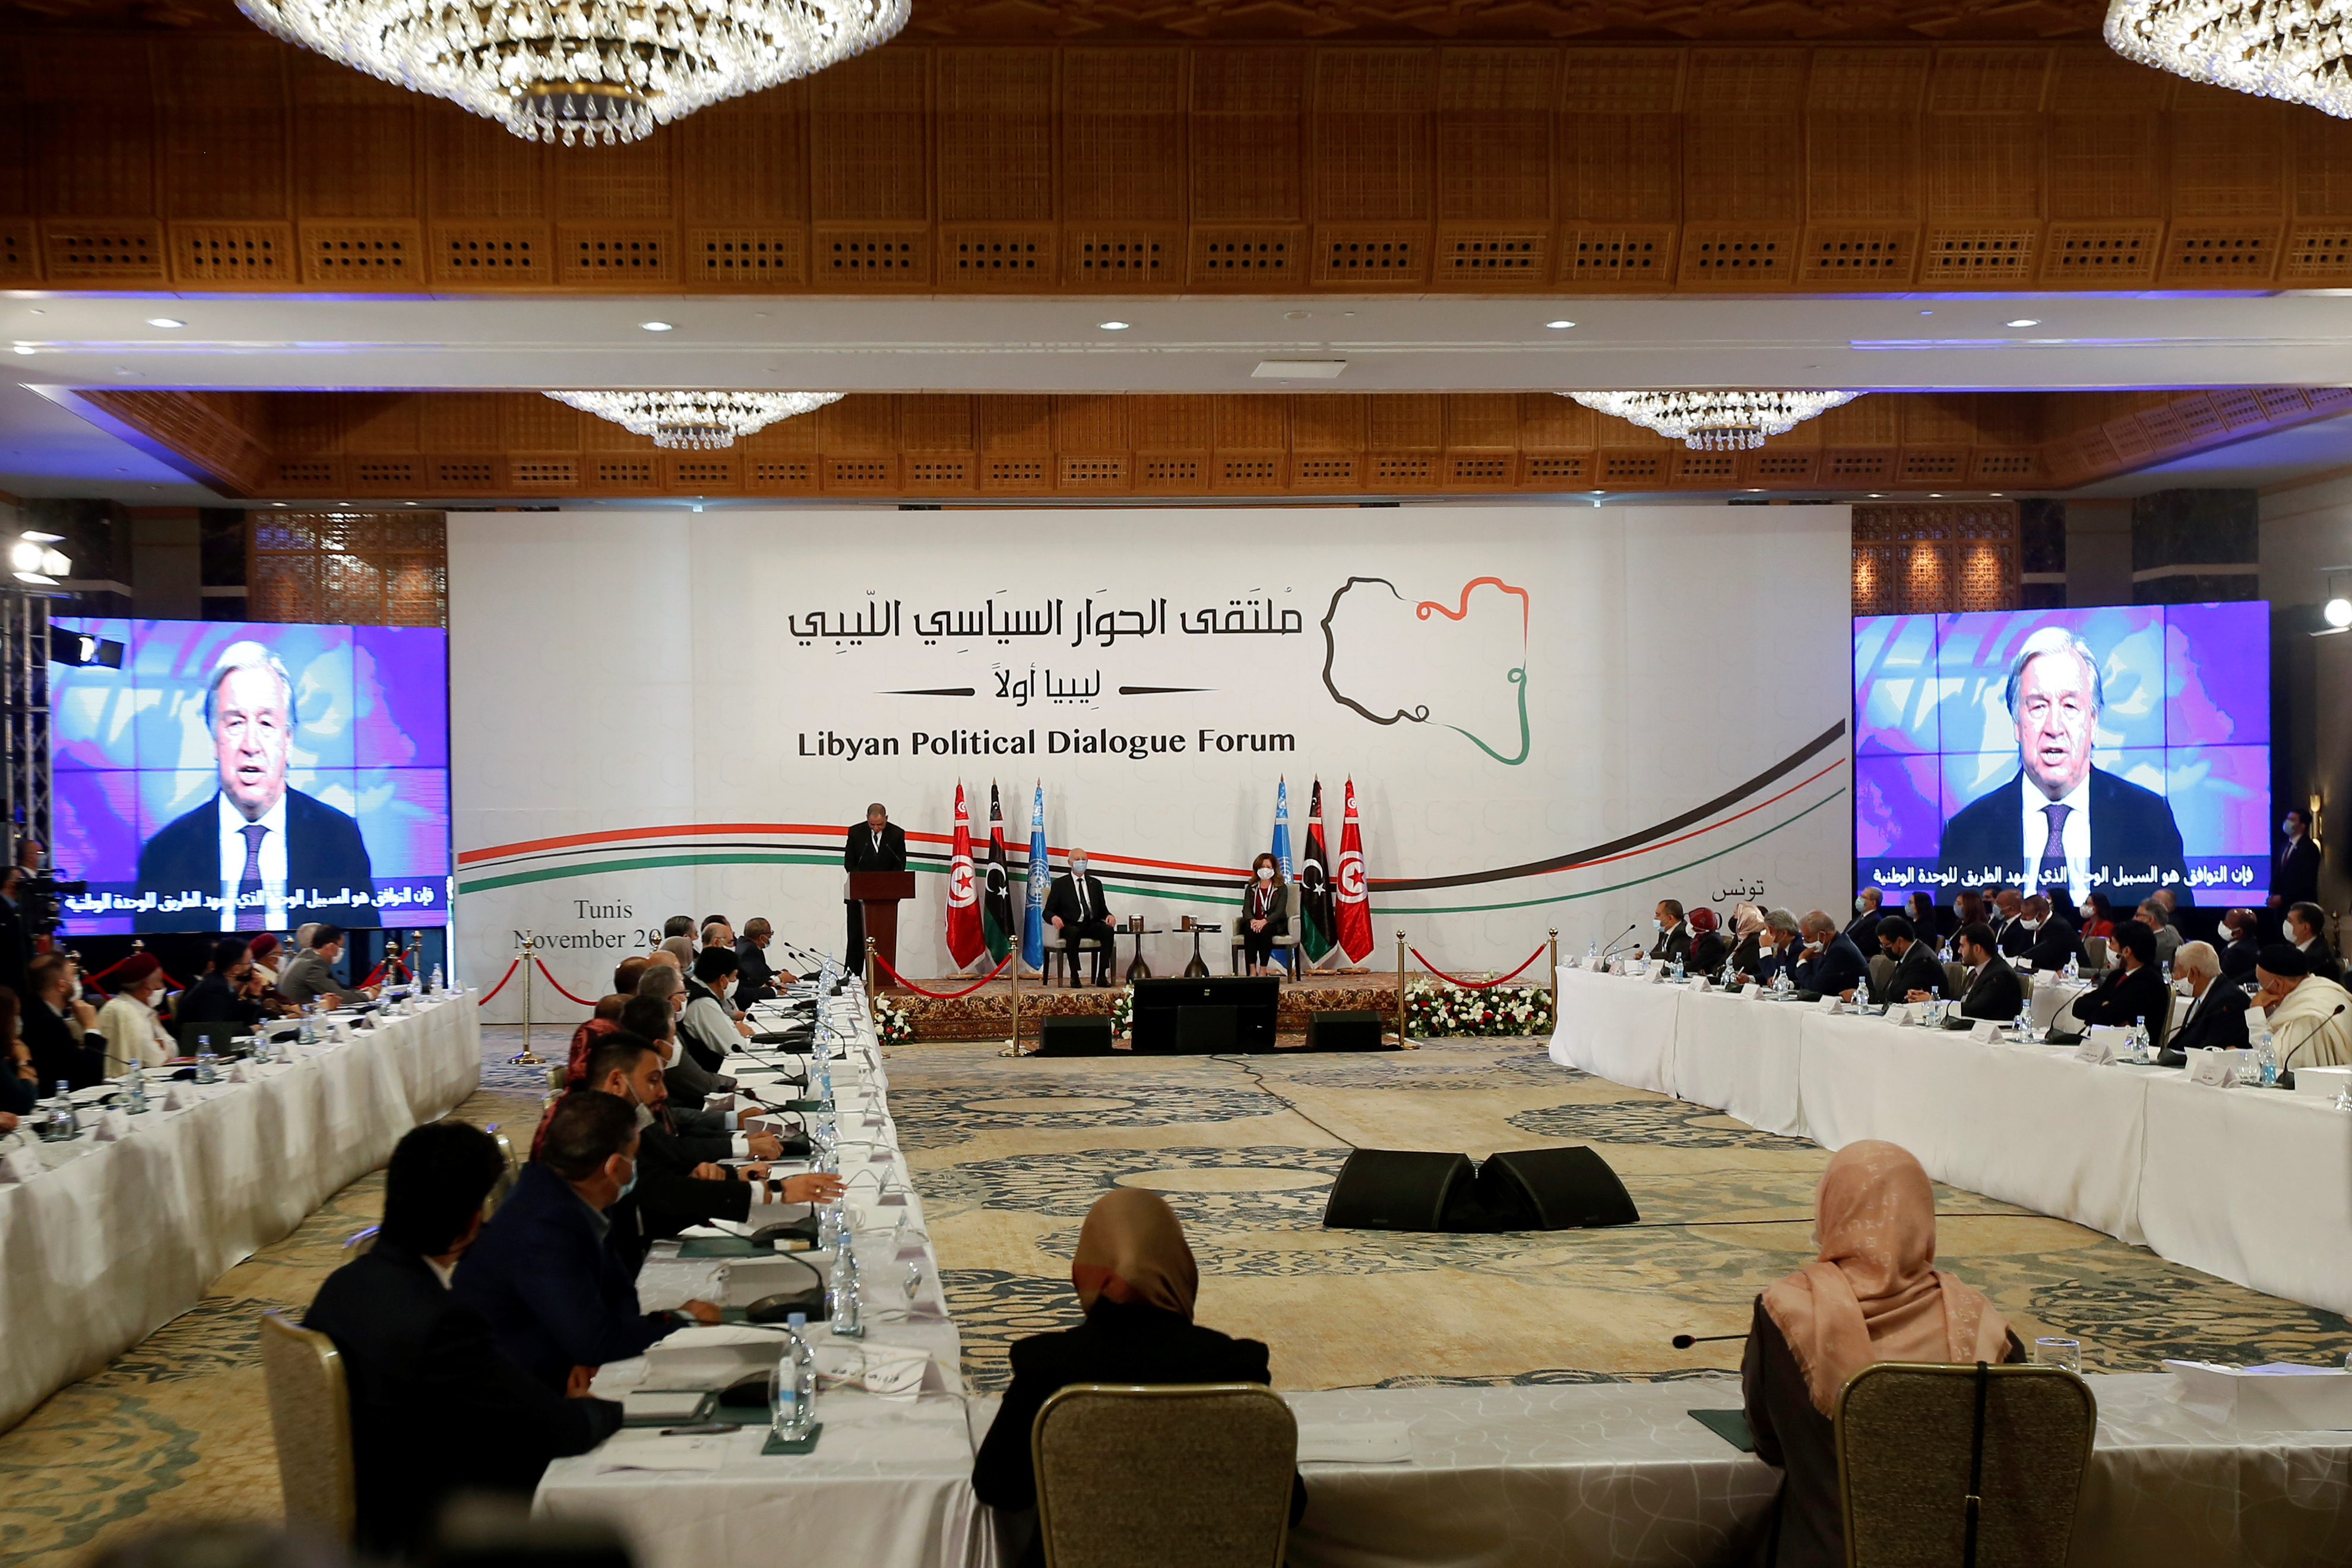 Building peace through subnational governance: The case of Libya